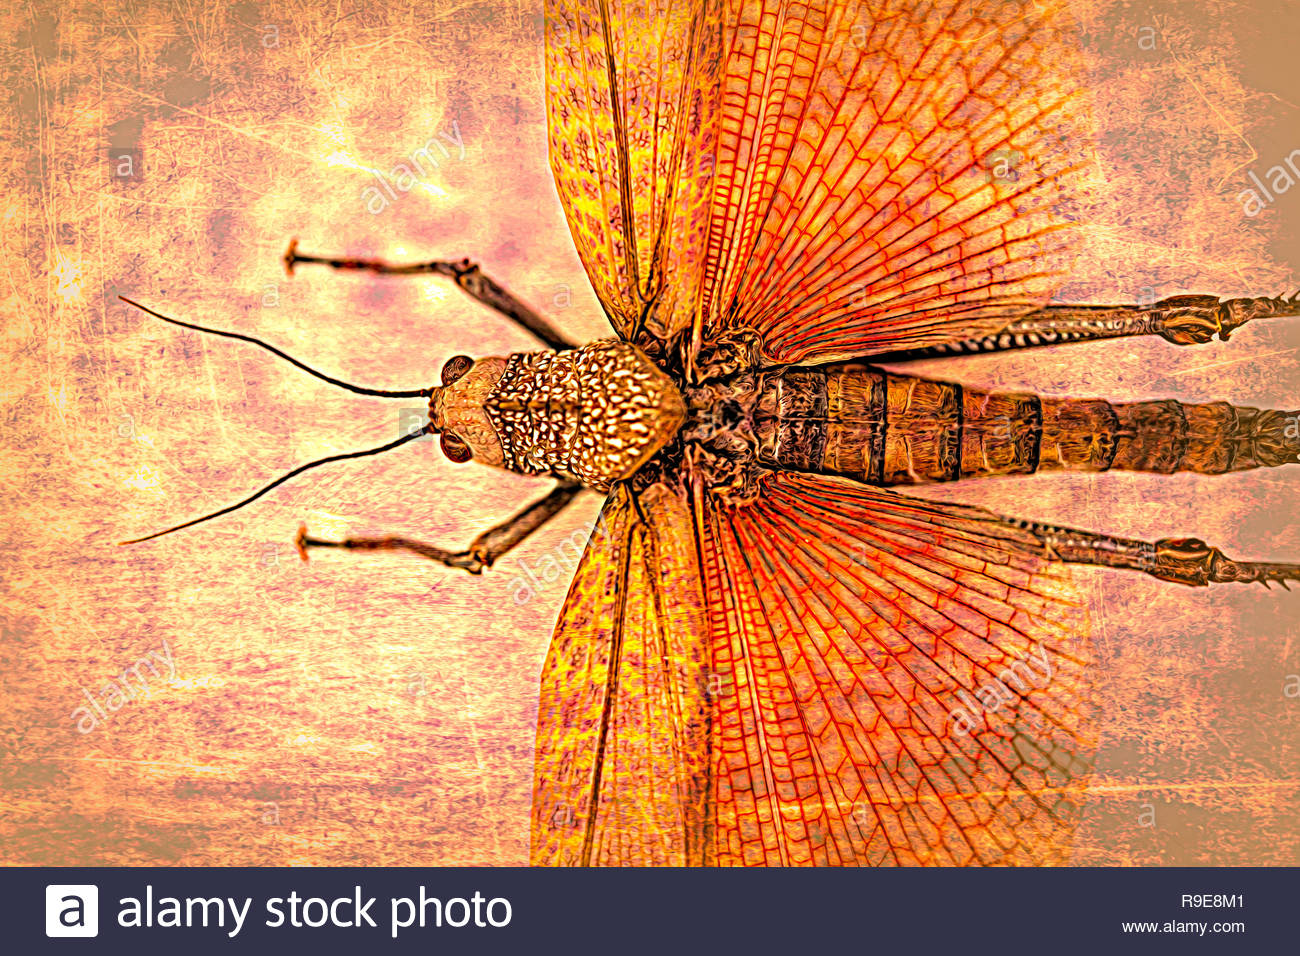 Computer Bugs Stock Photos Images Alamy Winged Insects Made From Old Circuit Boards And Electronics A Beautiful Dissected Insect Is Turn Into Art By Using Filters Tools Personal